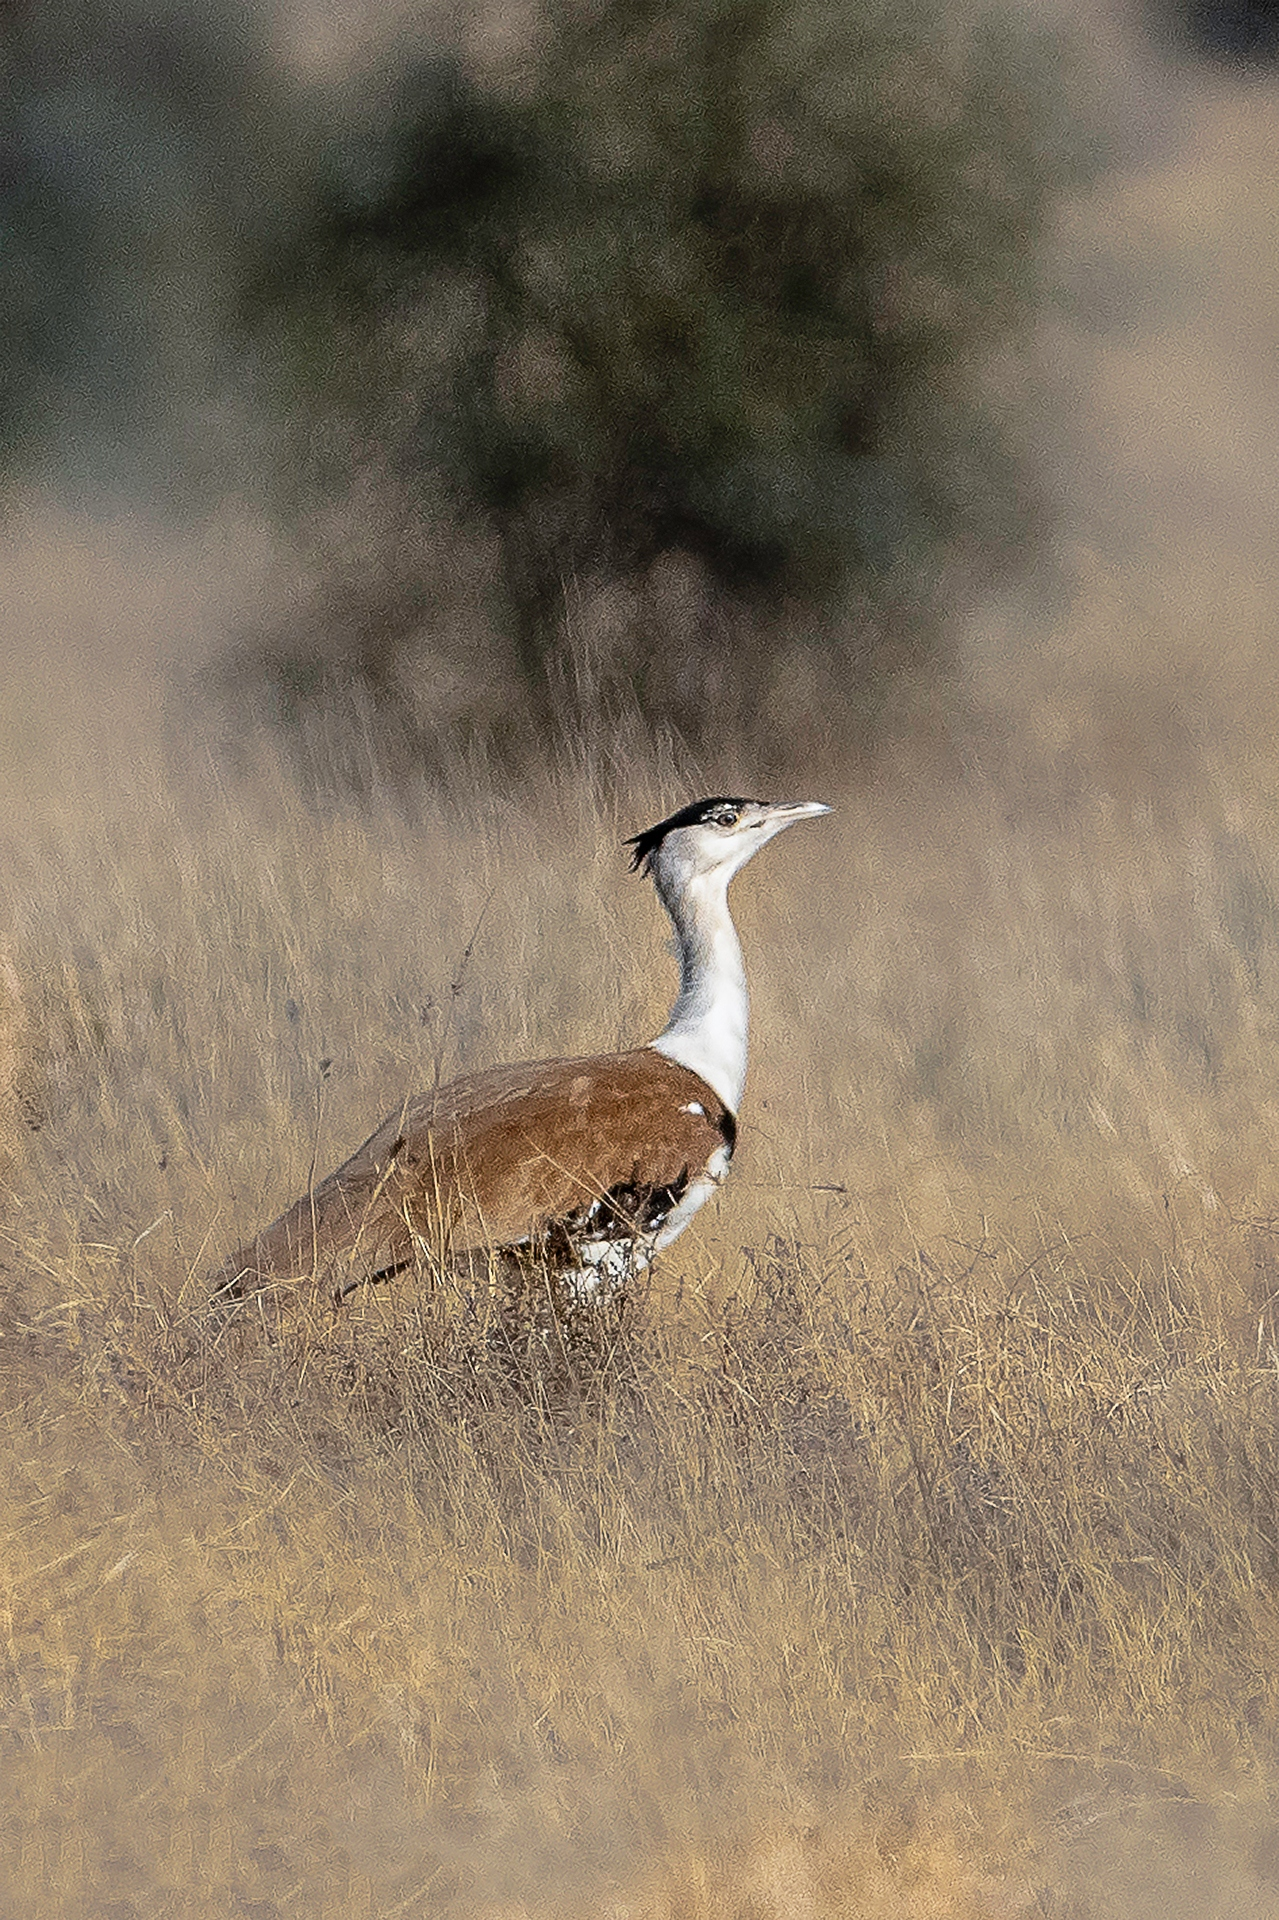 The great Indian bustard was once in the running to become the national bird of India, strongly supported by ornithologist Salim Ali. However, some accounts say the Indian peafowl won, mostly because the jurors were afraid the GIB's name could be easily misspelt. Photo: Aseem Kumar Kothiala